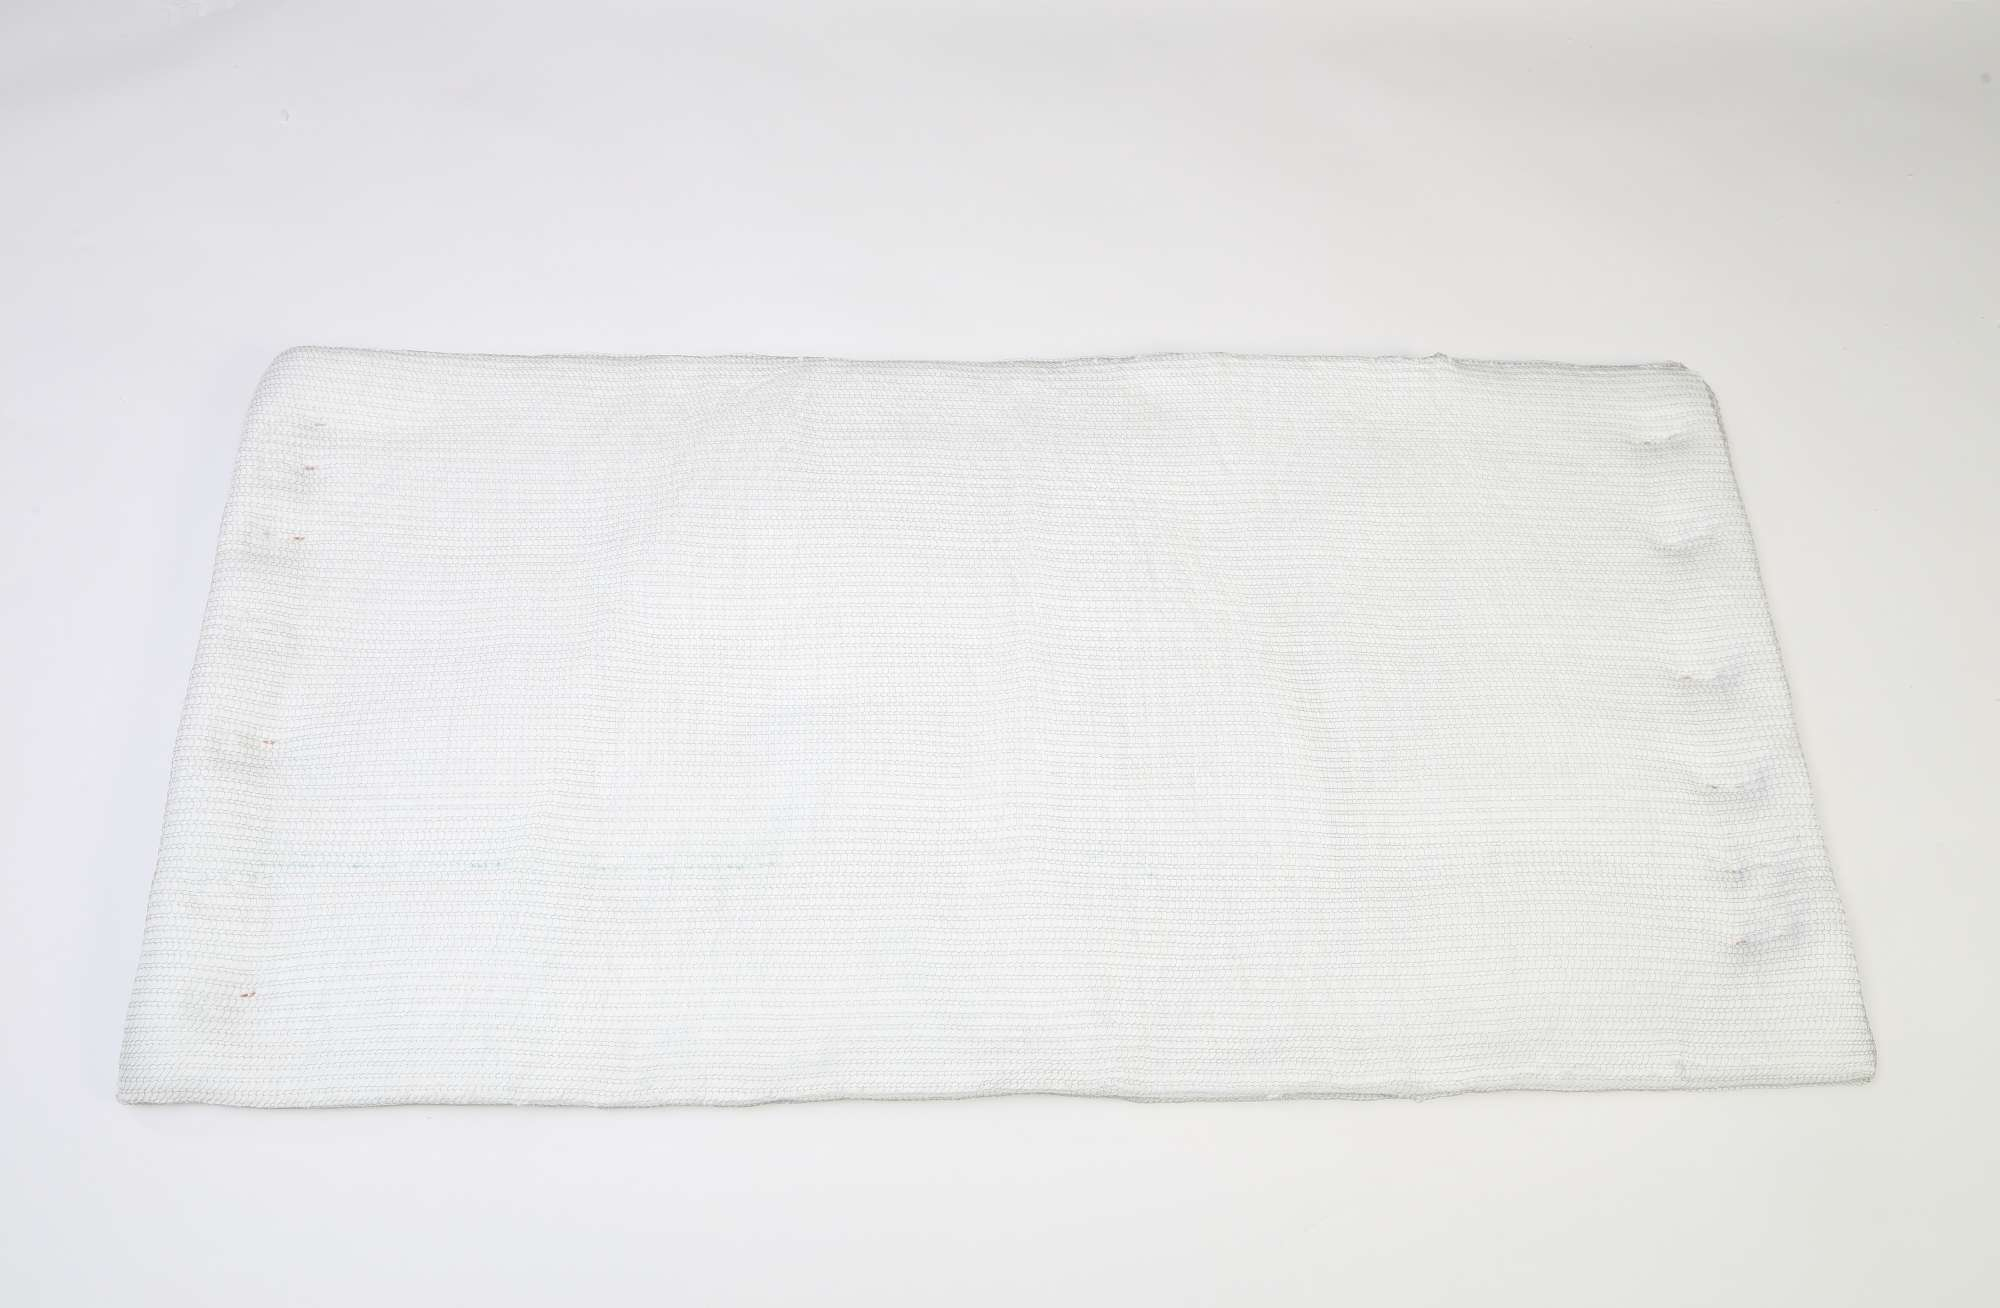 Image of Superwool insulation blanket 96kg/m³ in stainless steel mesh 25x600x1200mm